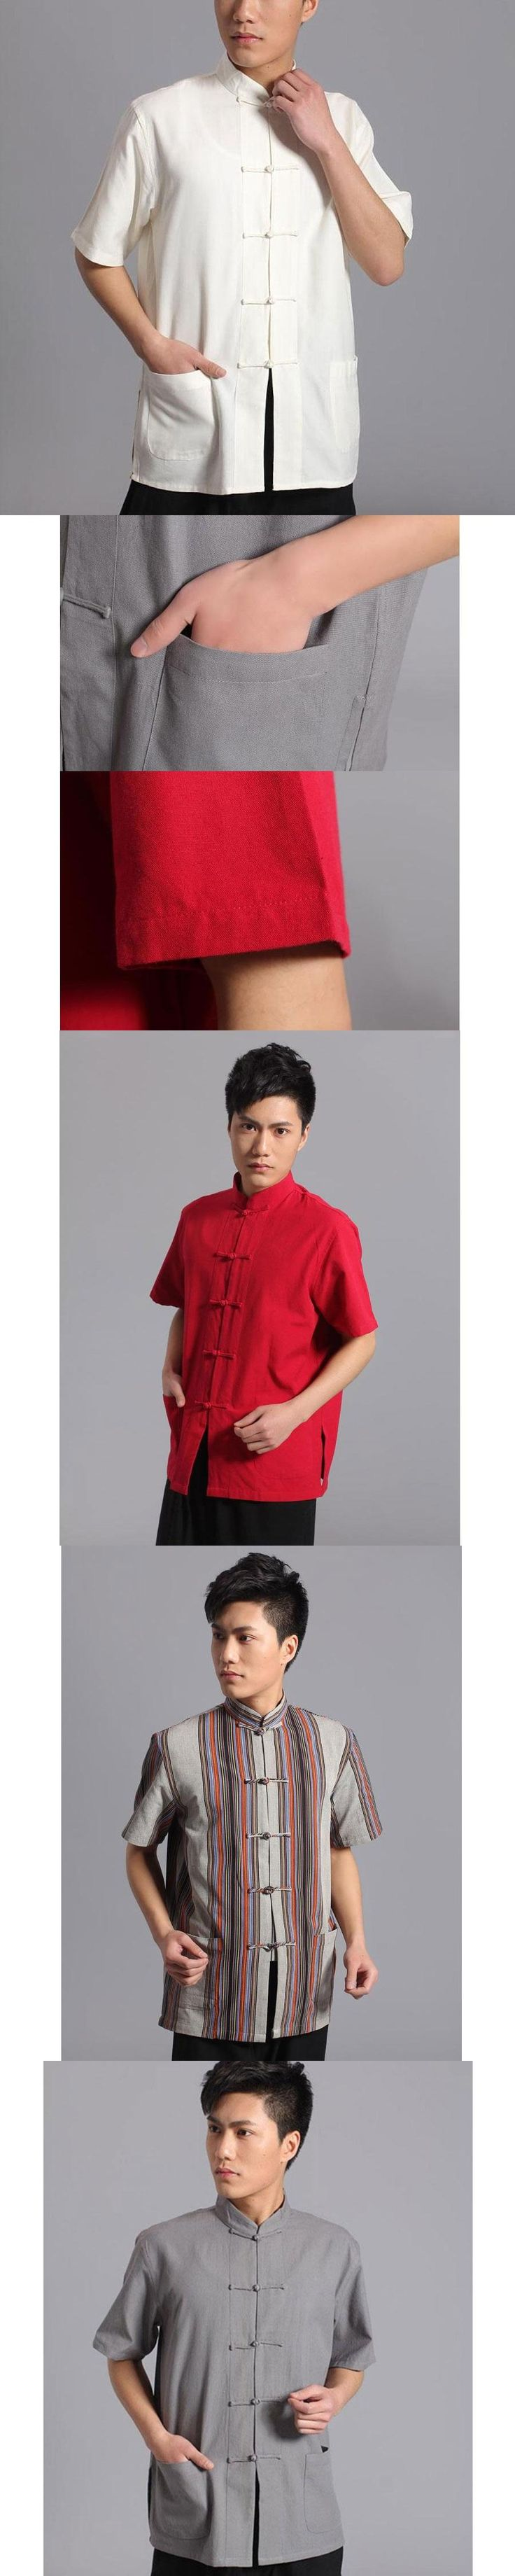 Short Sleeve Cotton Tang Suit Top Men Kung Fu Tai Chi Uniform Shirt Blouse Traditional Chinese Clothes Clothing for Men